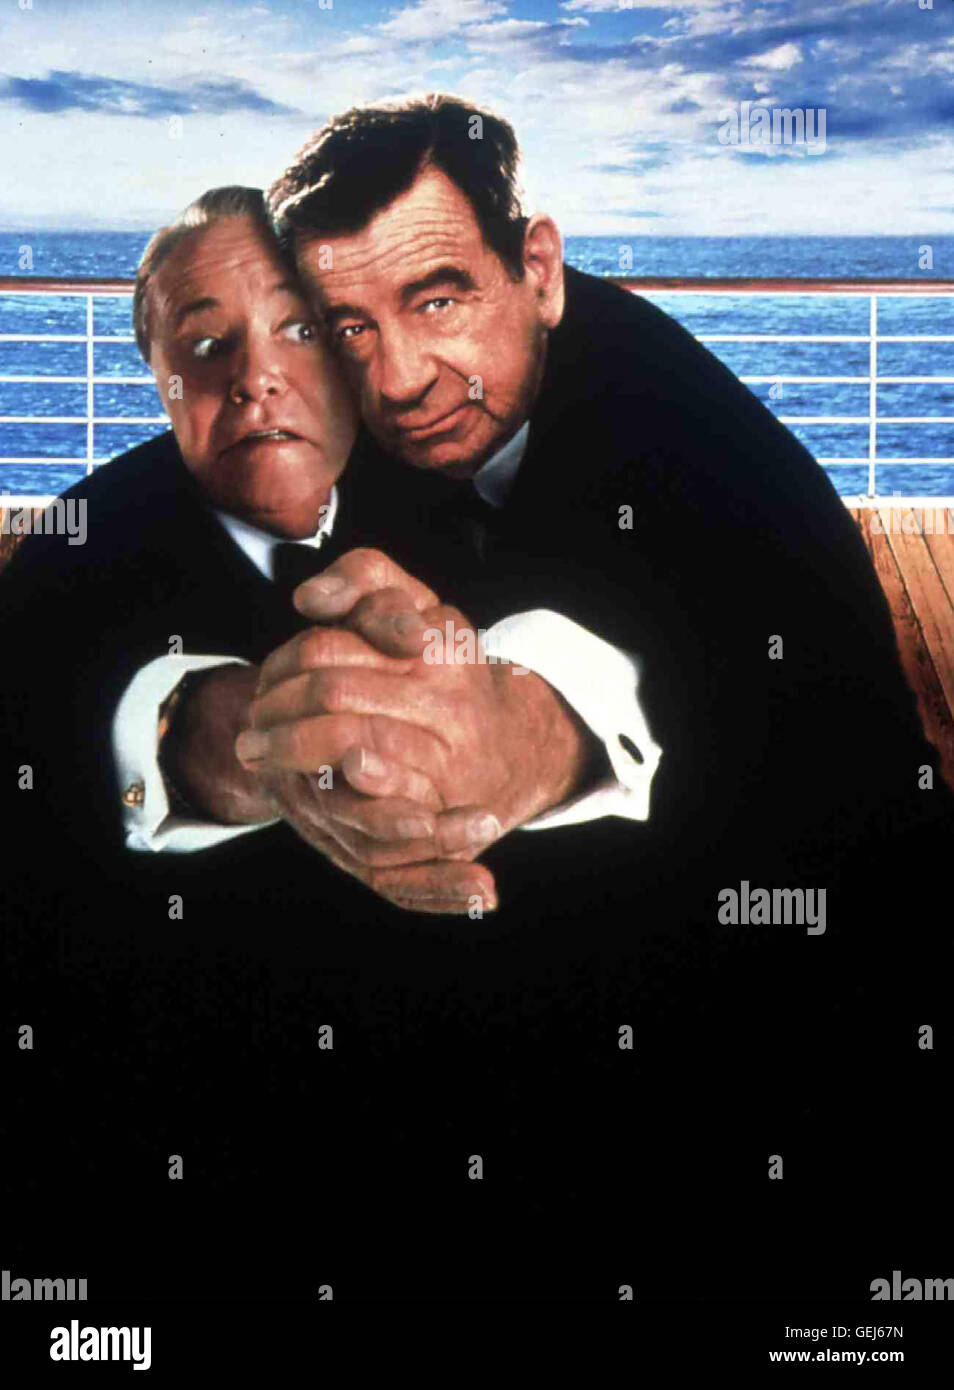 Odd couples. Jack-lemmon-walter-matthau-local-caption-1997-1990er-1990s-film-out-GEJ67N